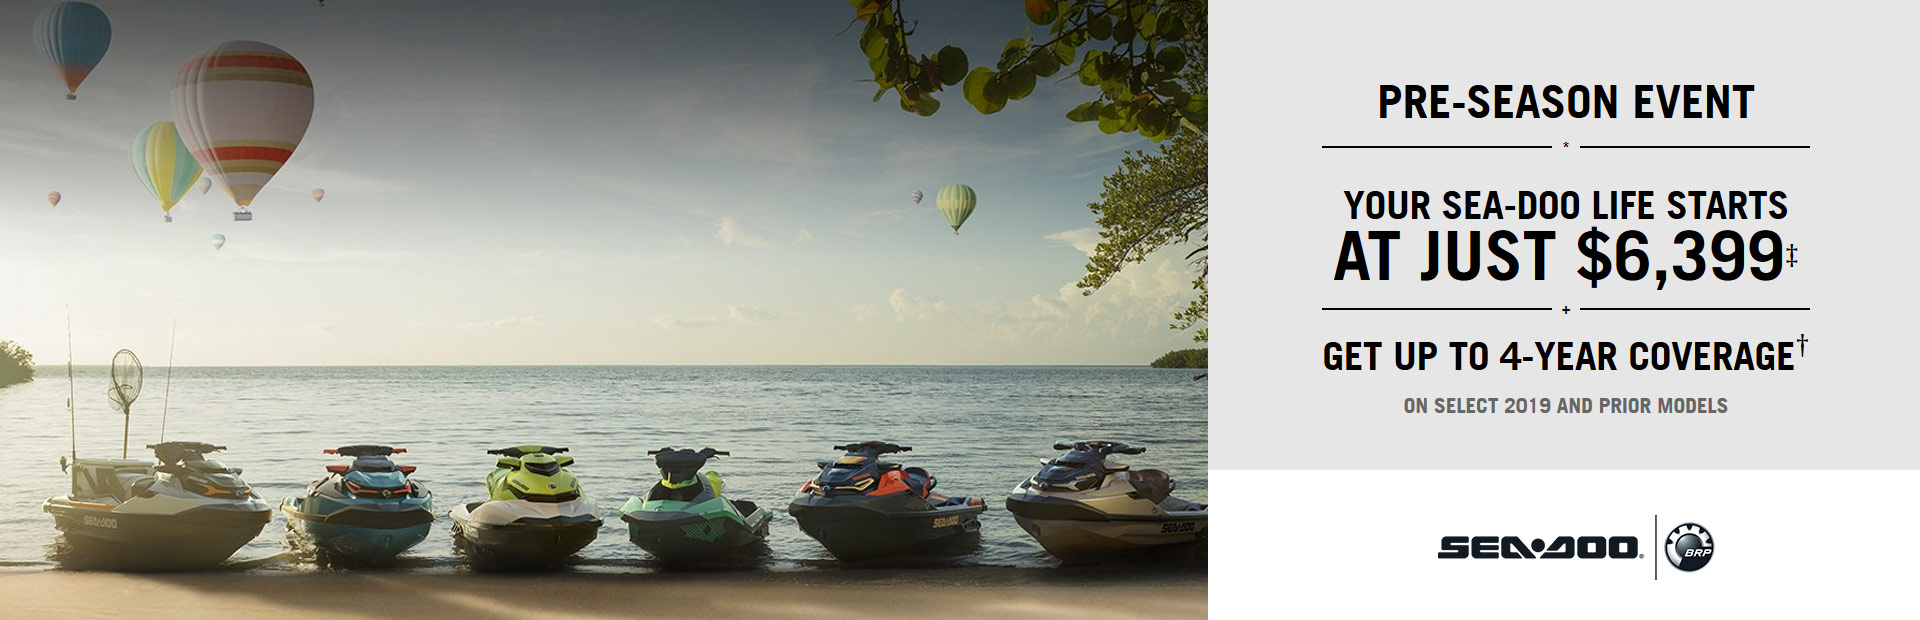 Sea-Doo Pre-Season Event